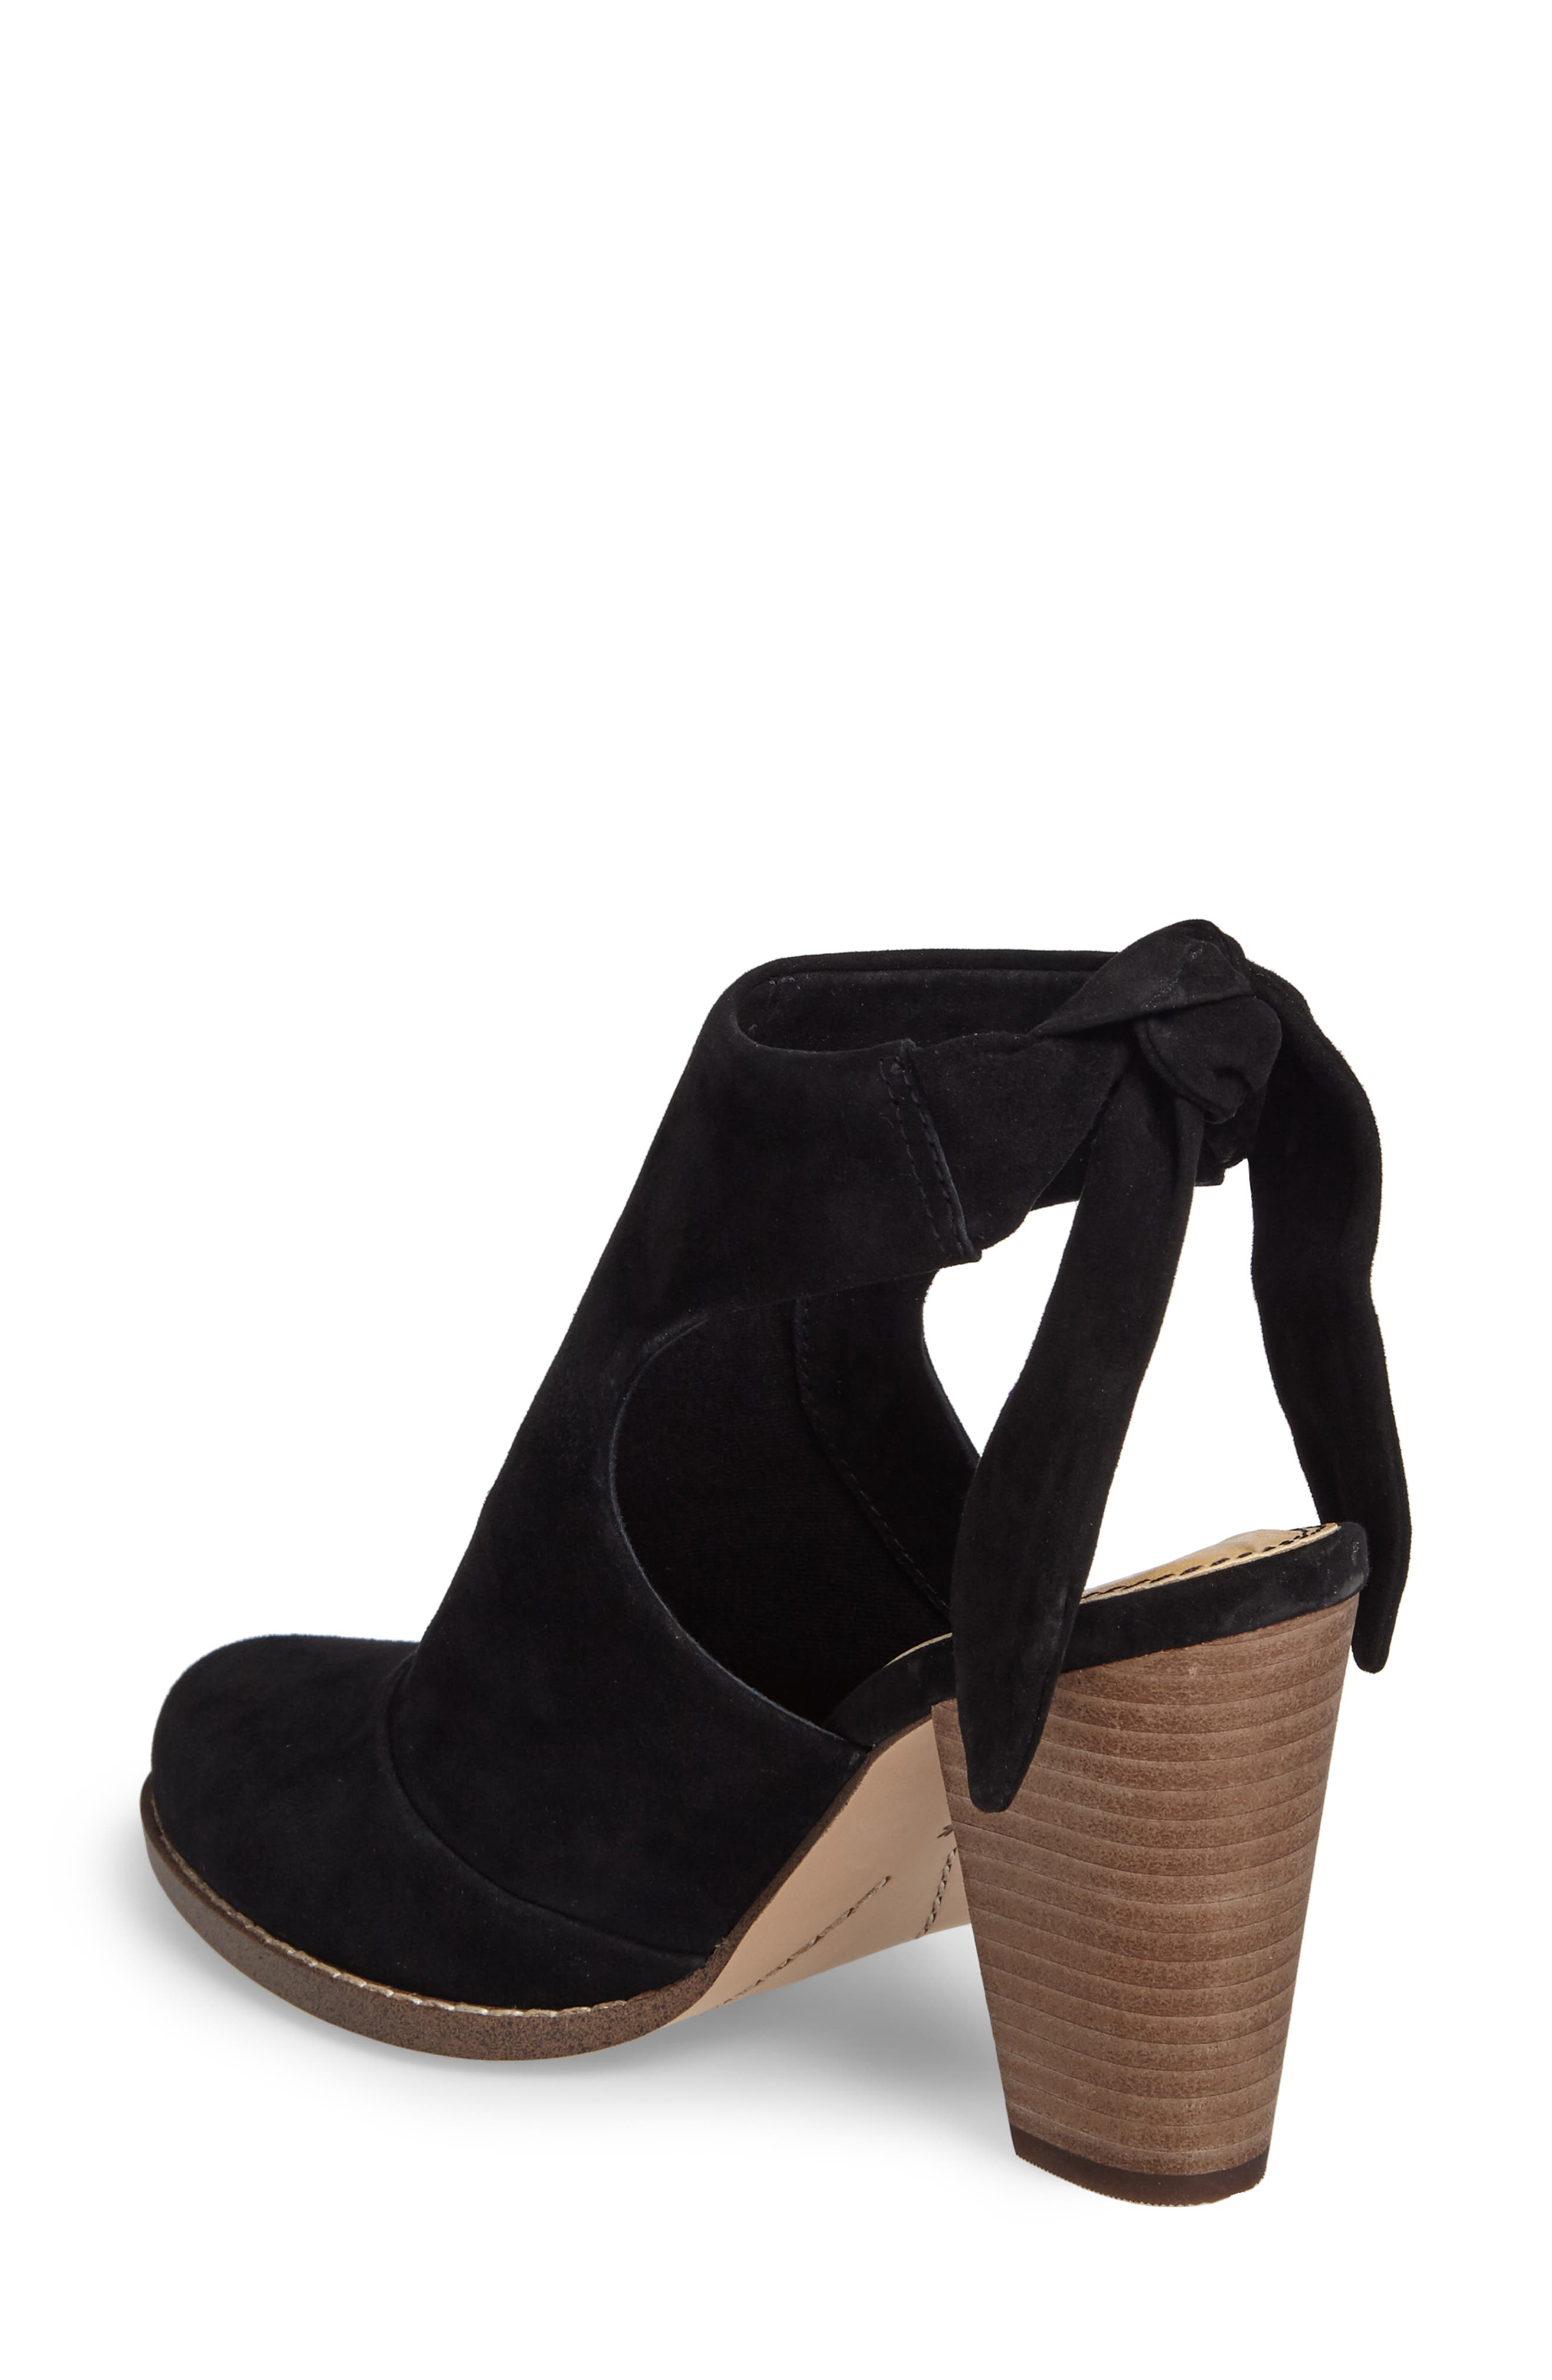 Danae Stacked Heel Bootie,                             Alternate thumbnail 2, color,                             013